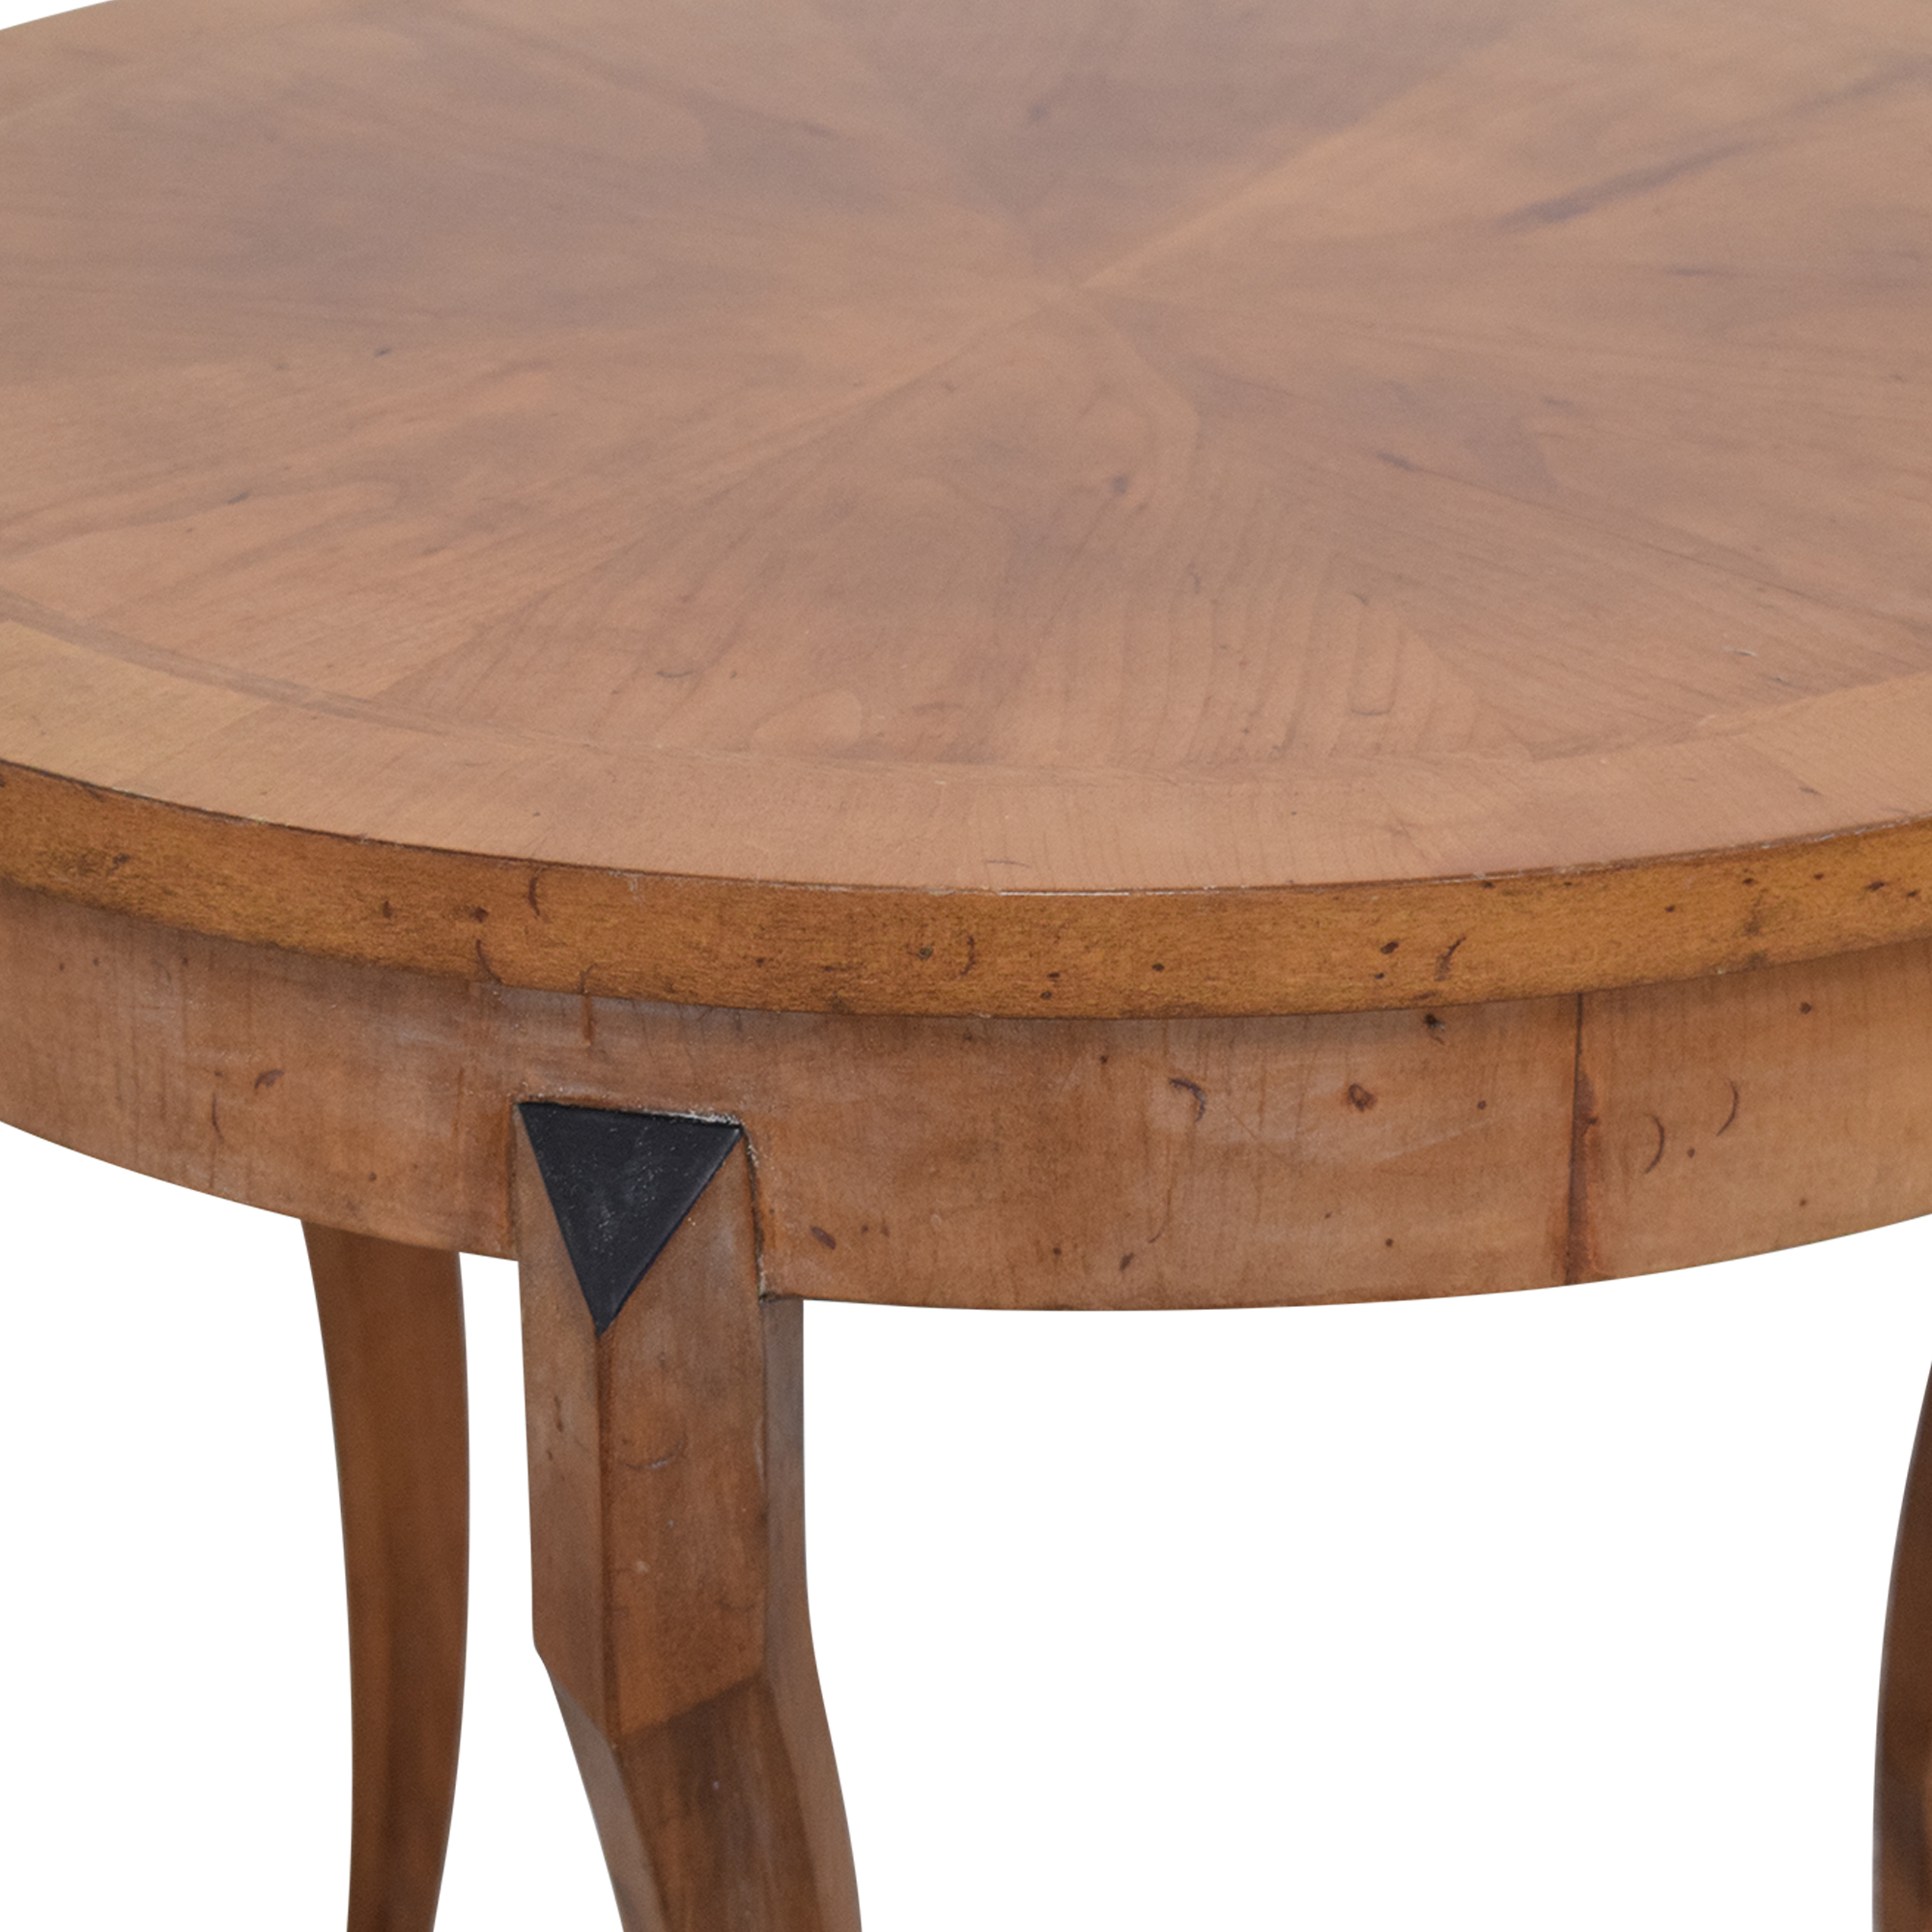 Bloomingdale's Bloomingdale's Round Accent Table used